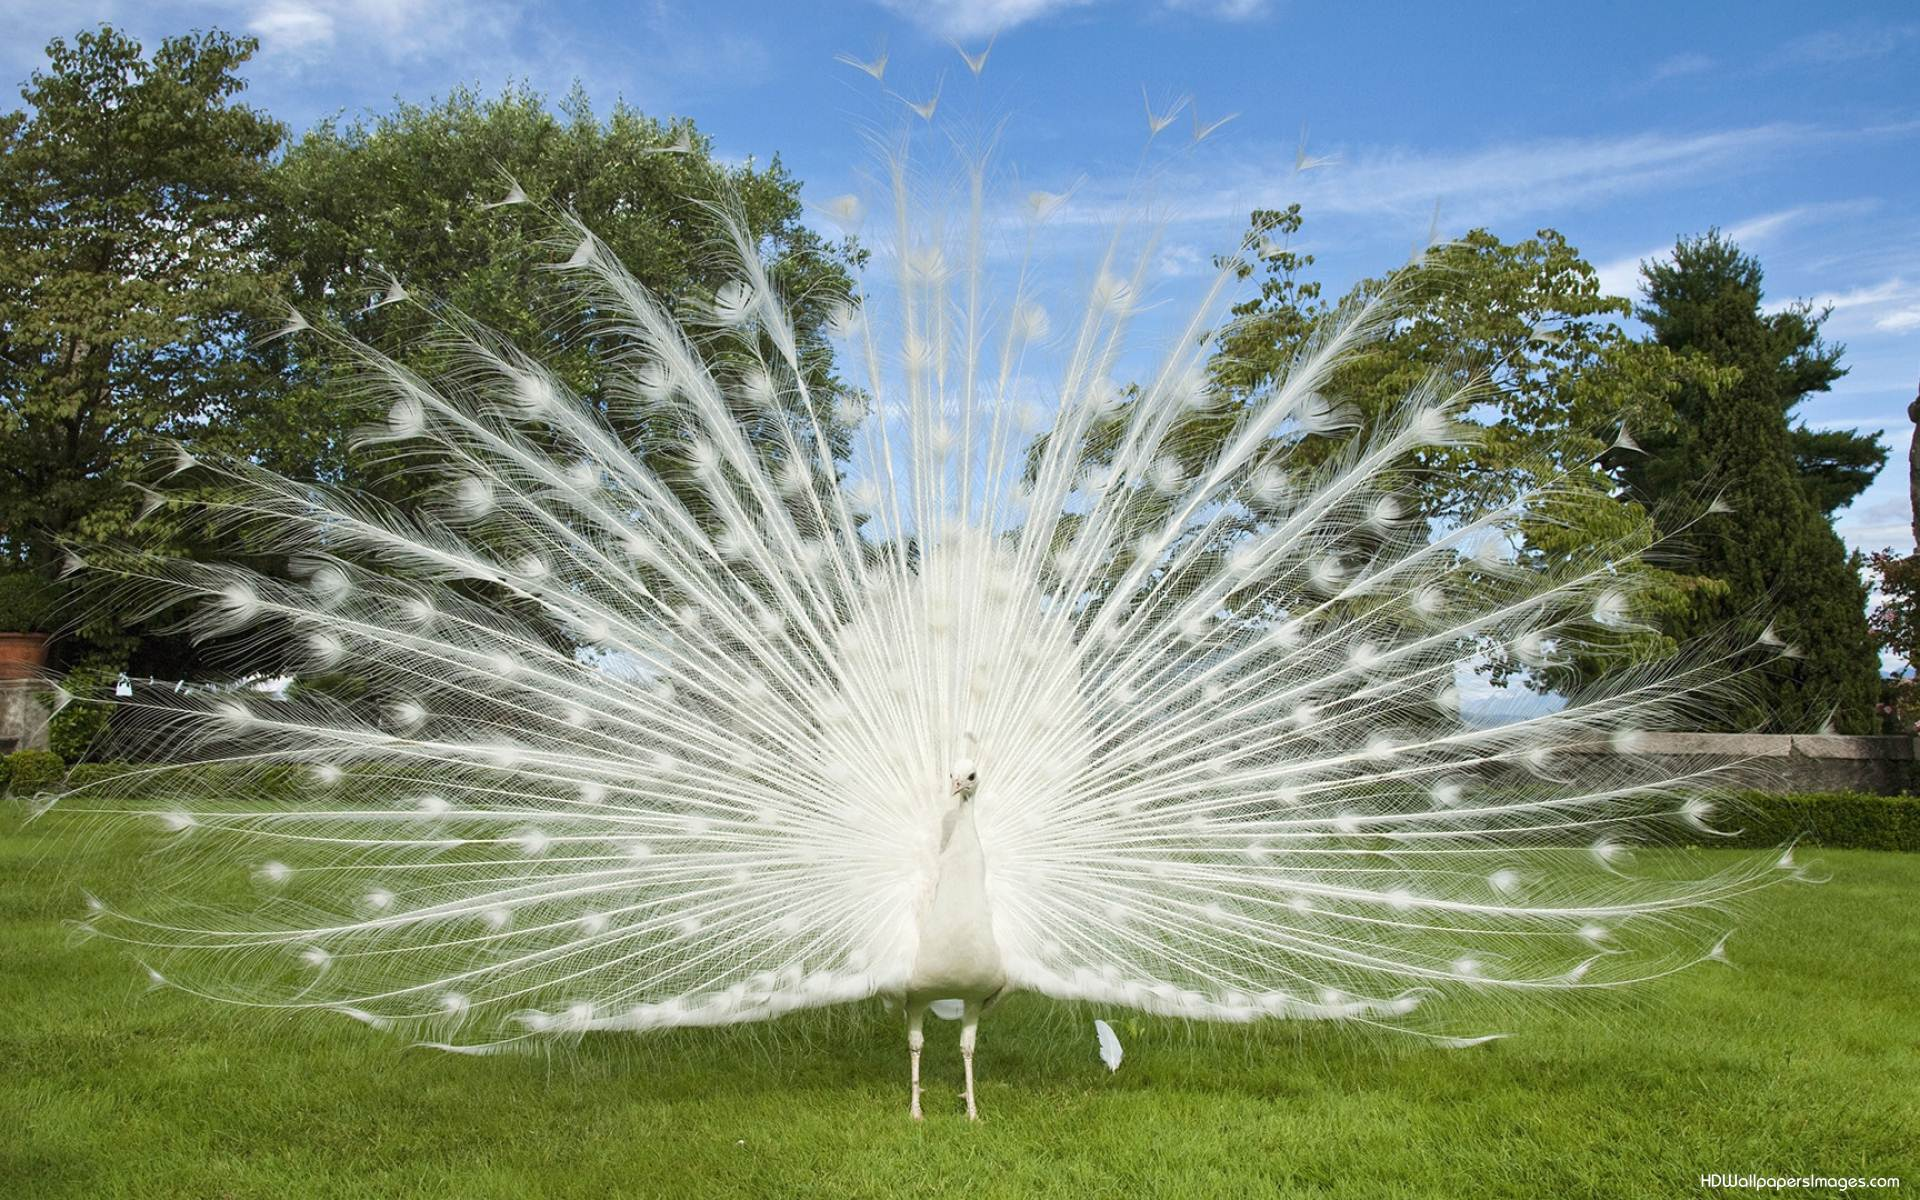 Download Wallpaper Of White Peacock Gallery